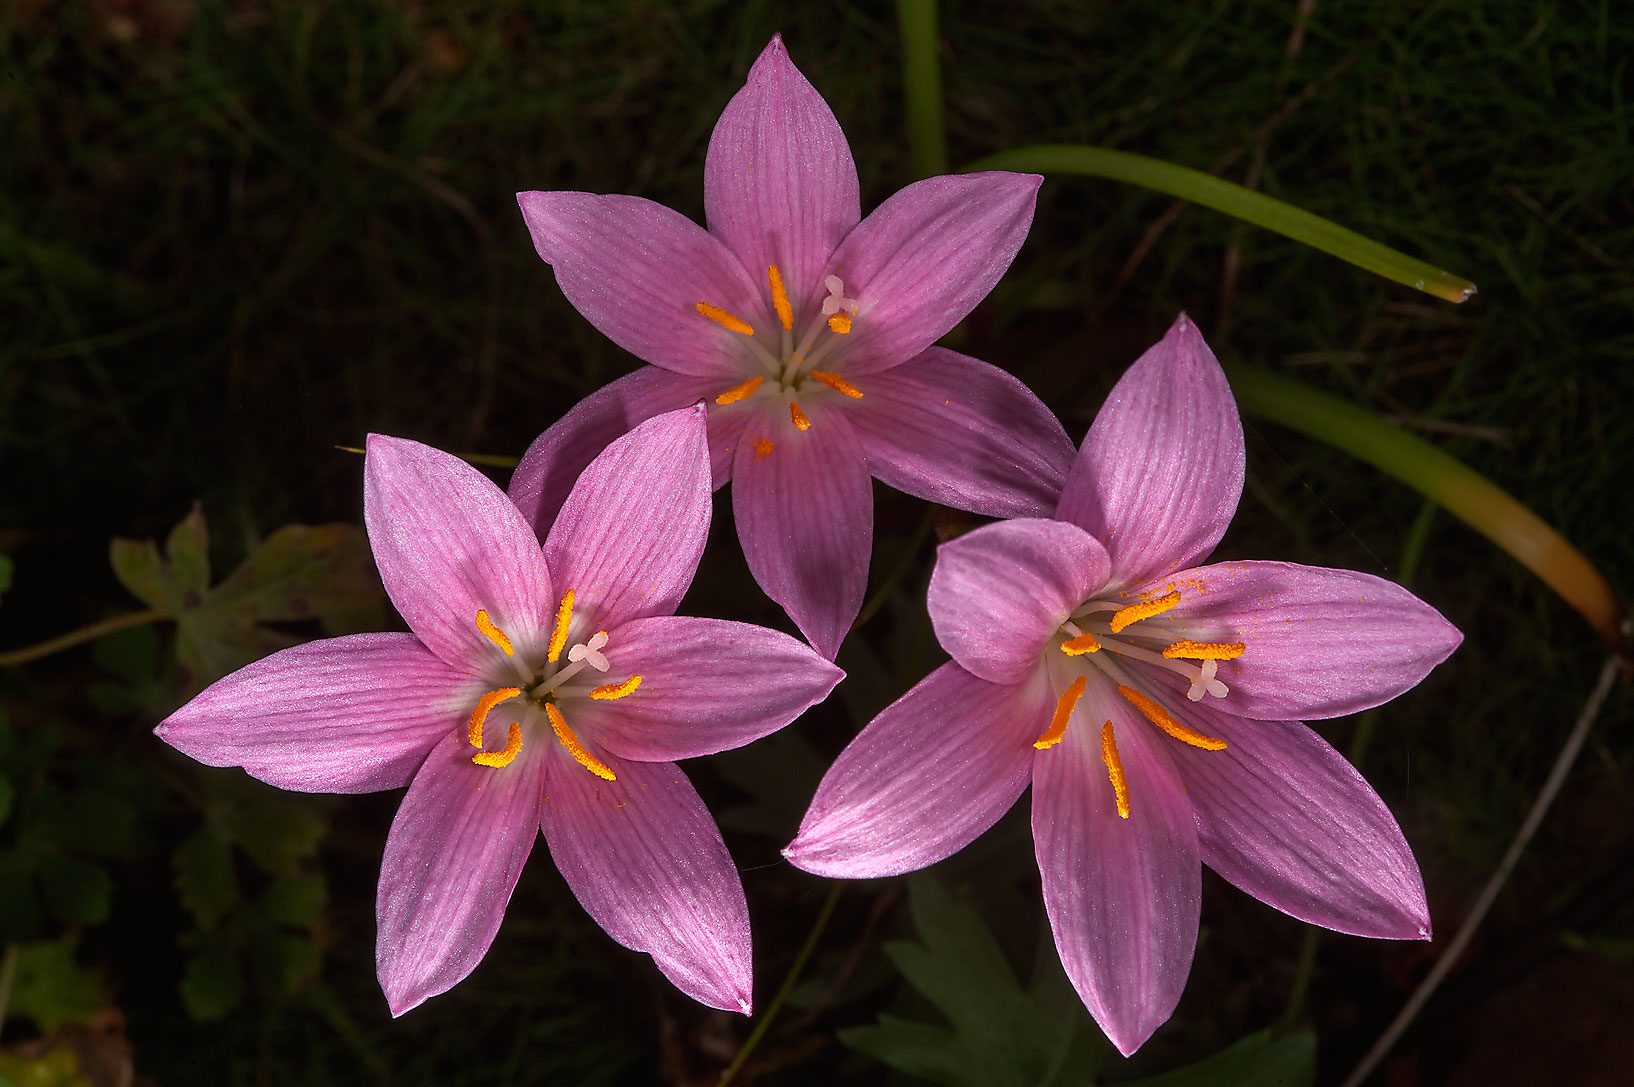 Pink rain lilies in Mercer Arboretum and Botanical Gardens. Humble (Houston area), Texas